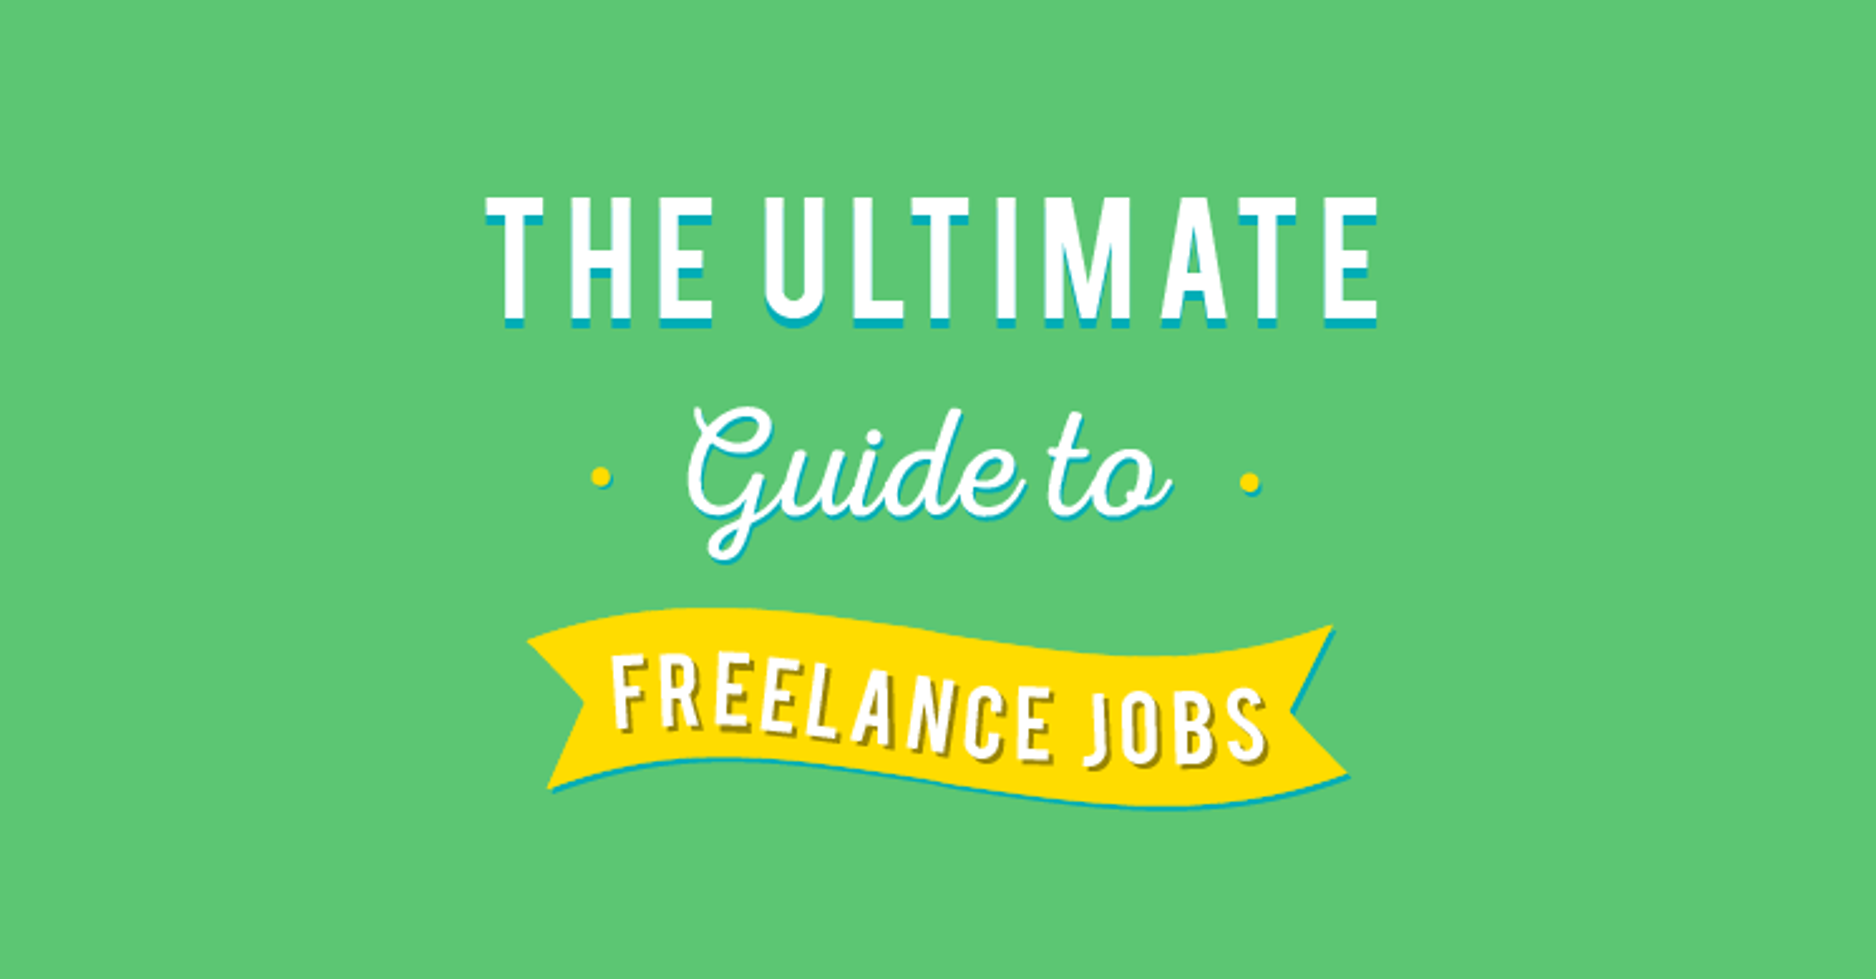 The ultimate guide to Freelancing Jobs